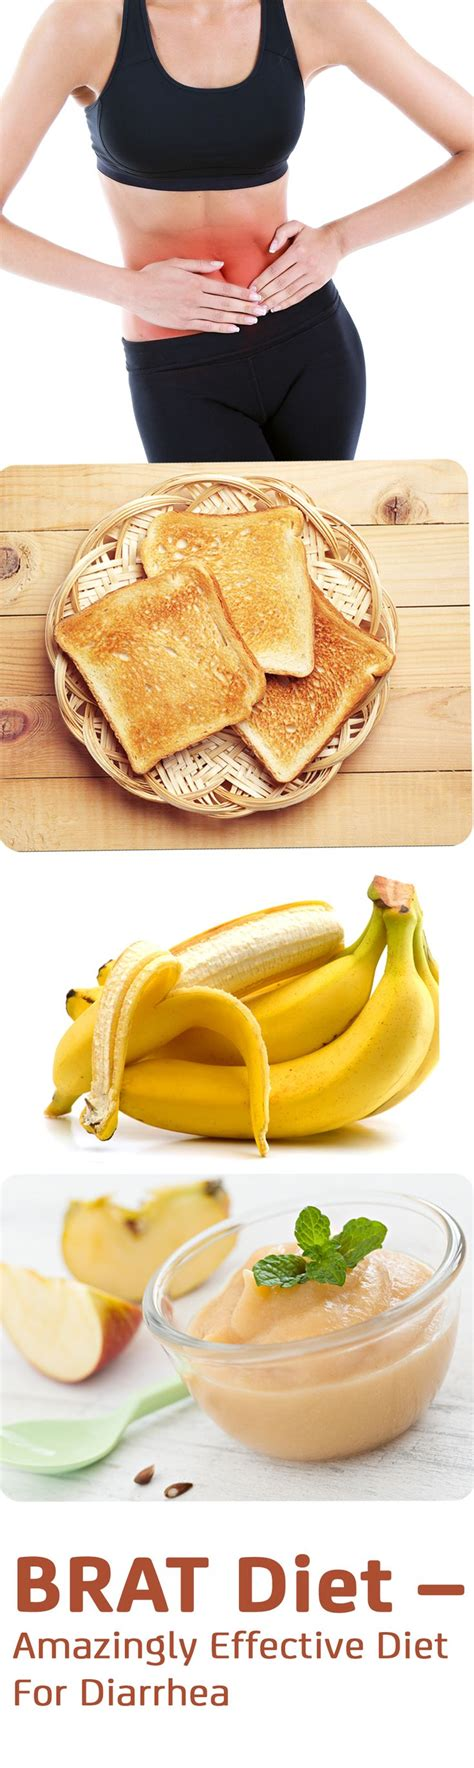 diet for with diarrhea 17 best ideas about diarrhea diet on diarrhea food foods to help diarrhea